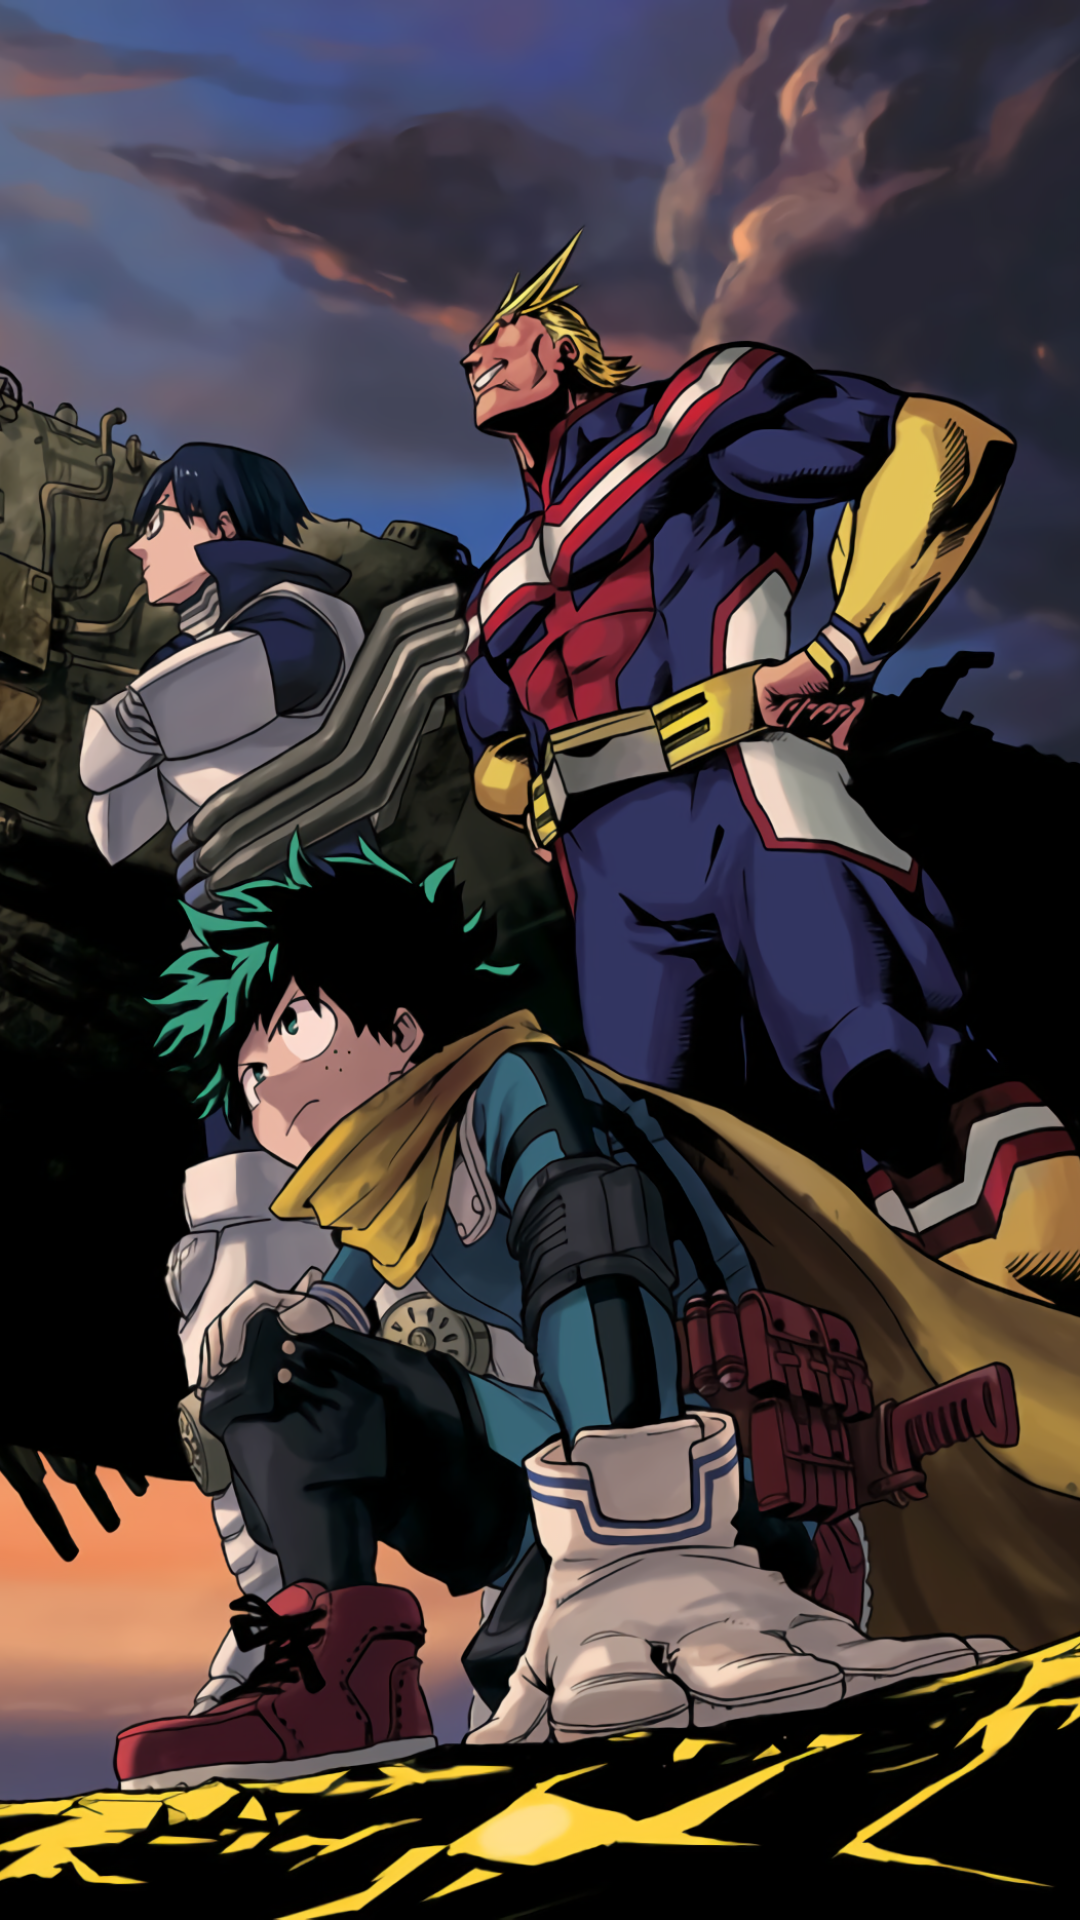 Anime My Hero Academia 1080x1920 Wallpaper Id 650257 Mobile Abyss